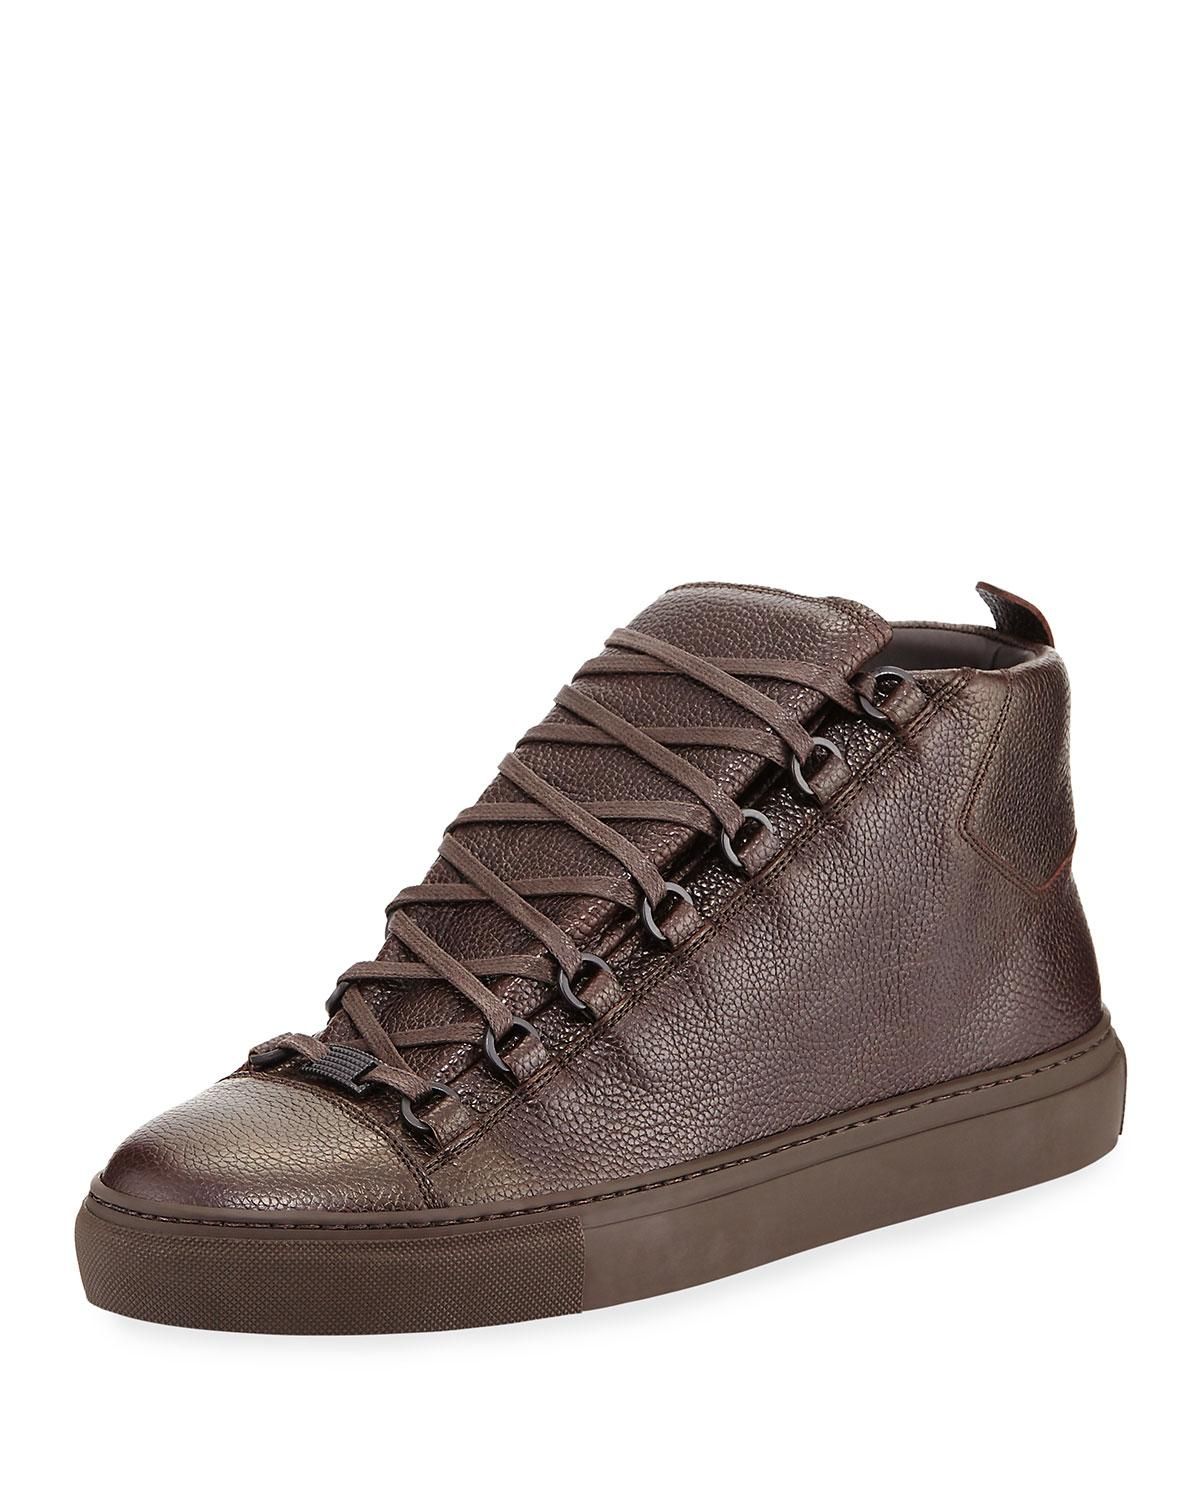 1d88c83f1c963 Lyst - Balenciaga Men s Arena Leather High-top Sneakers in Brown for Men